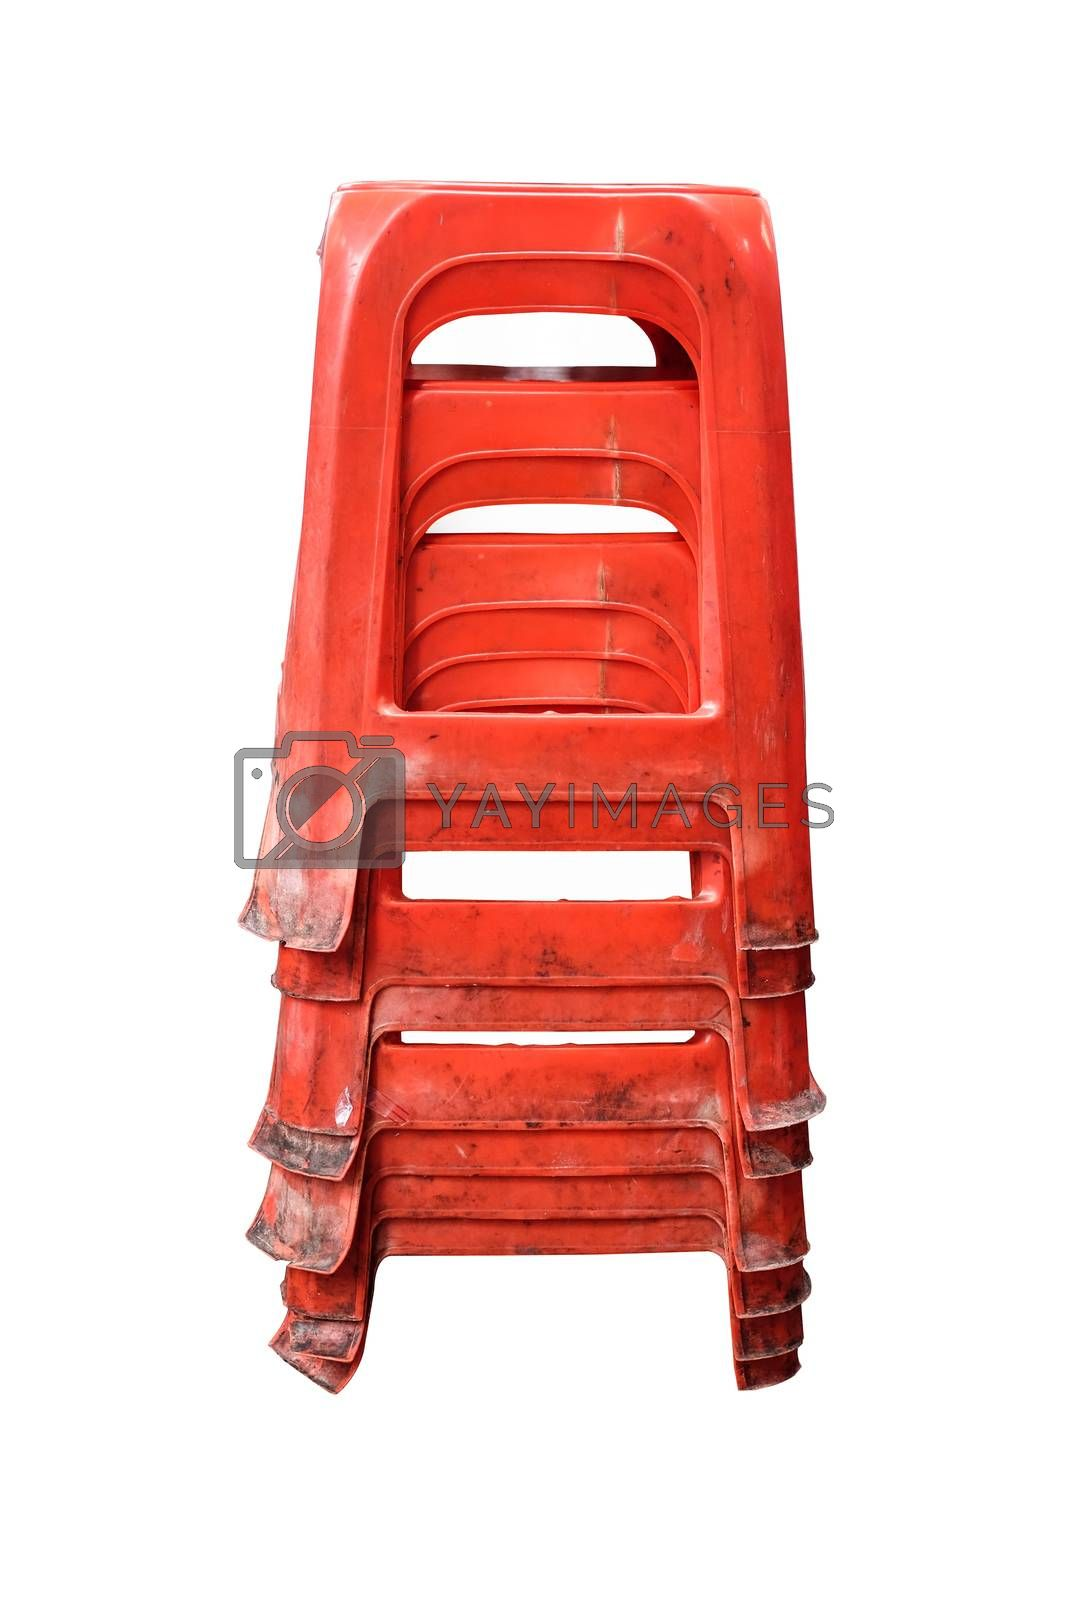 Old Red Plastic Chairs in white backgroud with clipping path